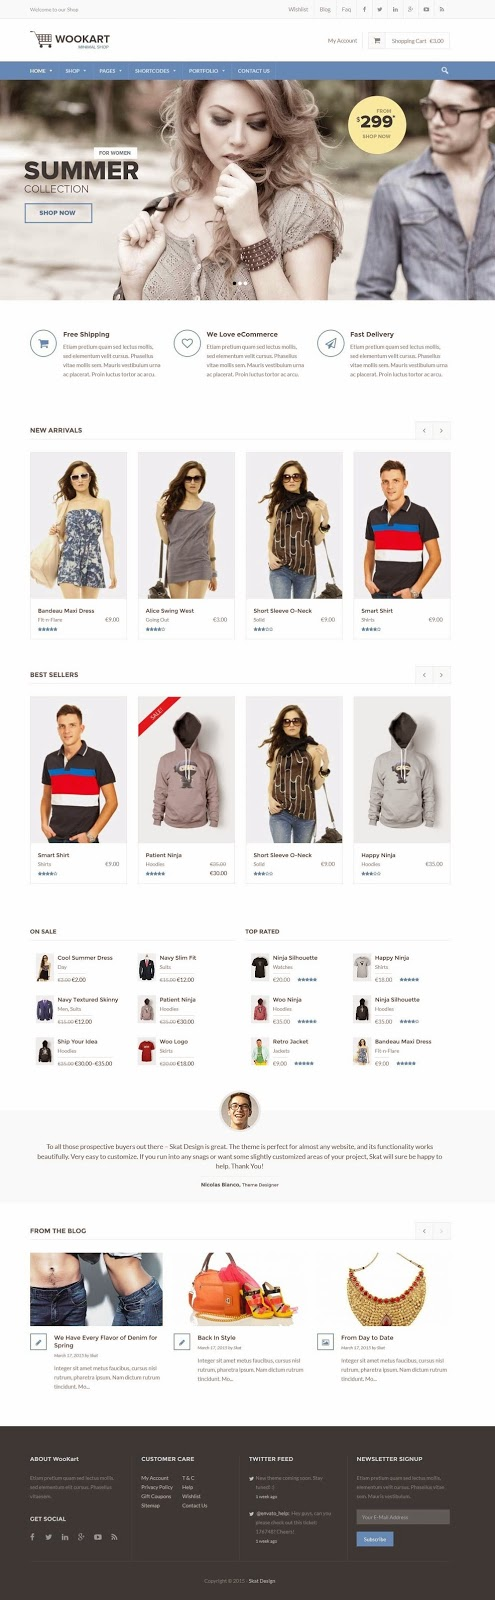 Best WooCommerce Shop WP Theme 2015